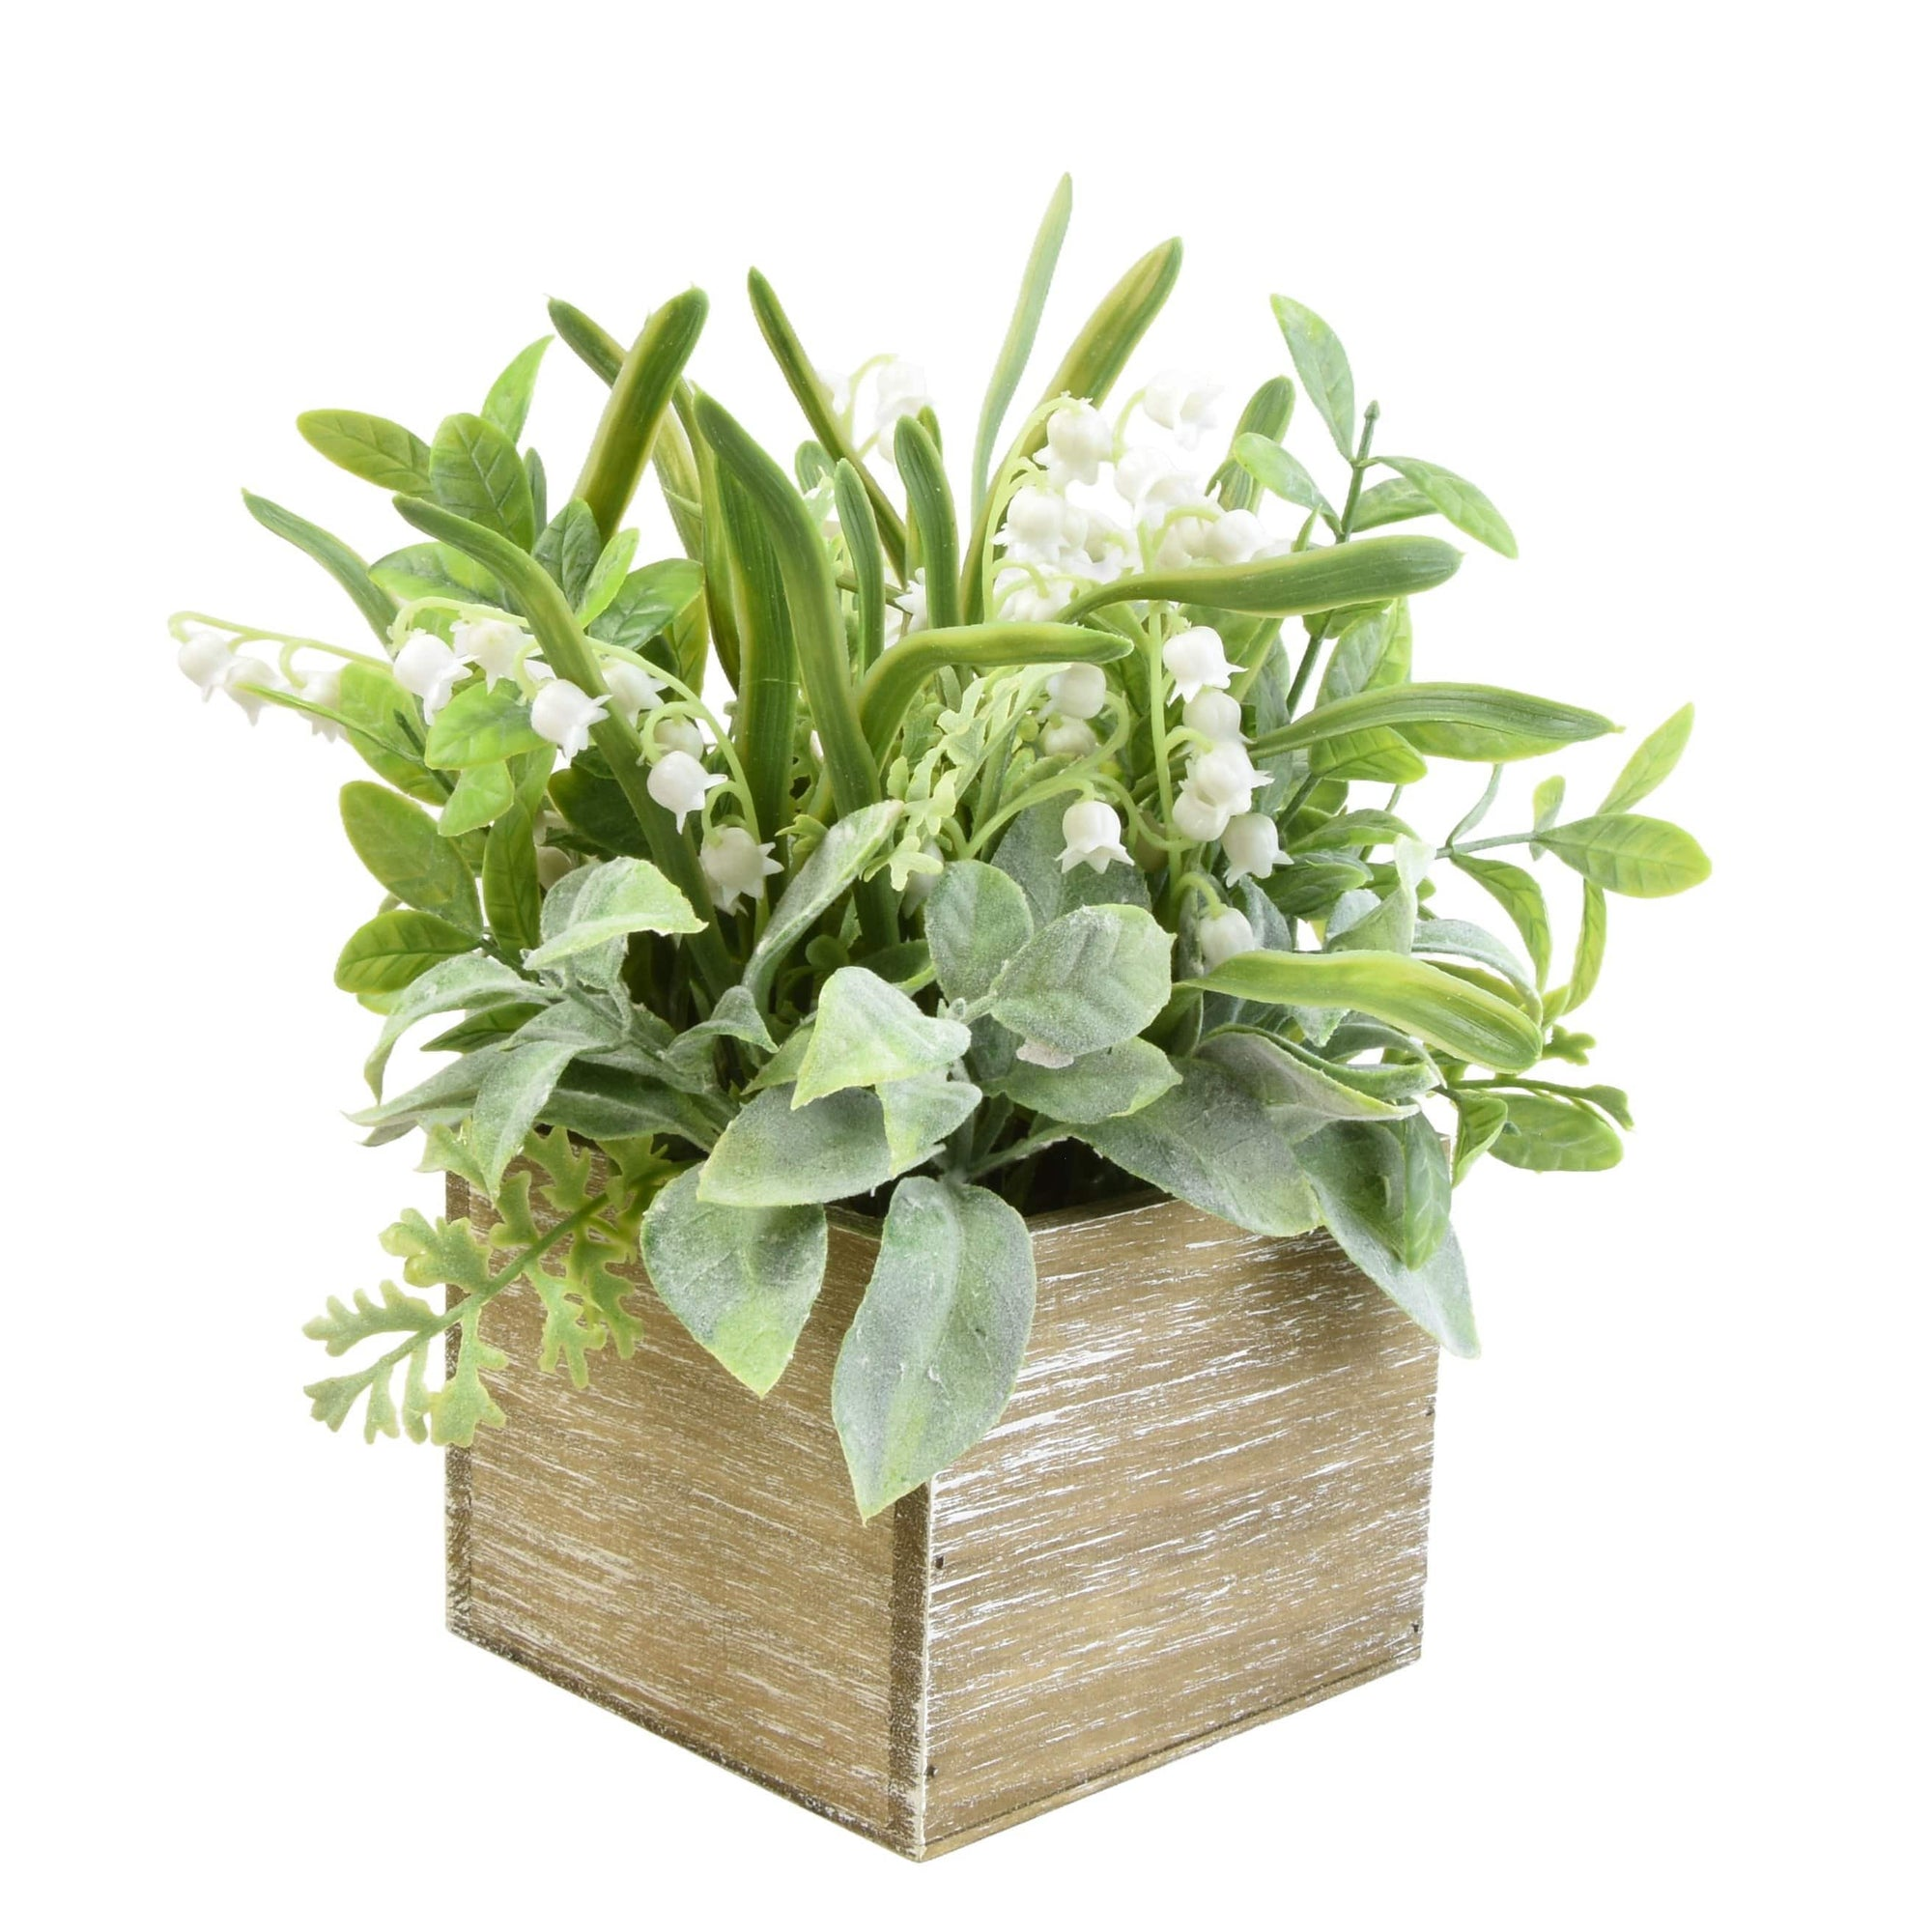 Candlelight Home Faux Herbs and Snowdrops in Rustic Wooden Box 6PK